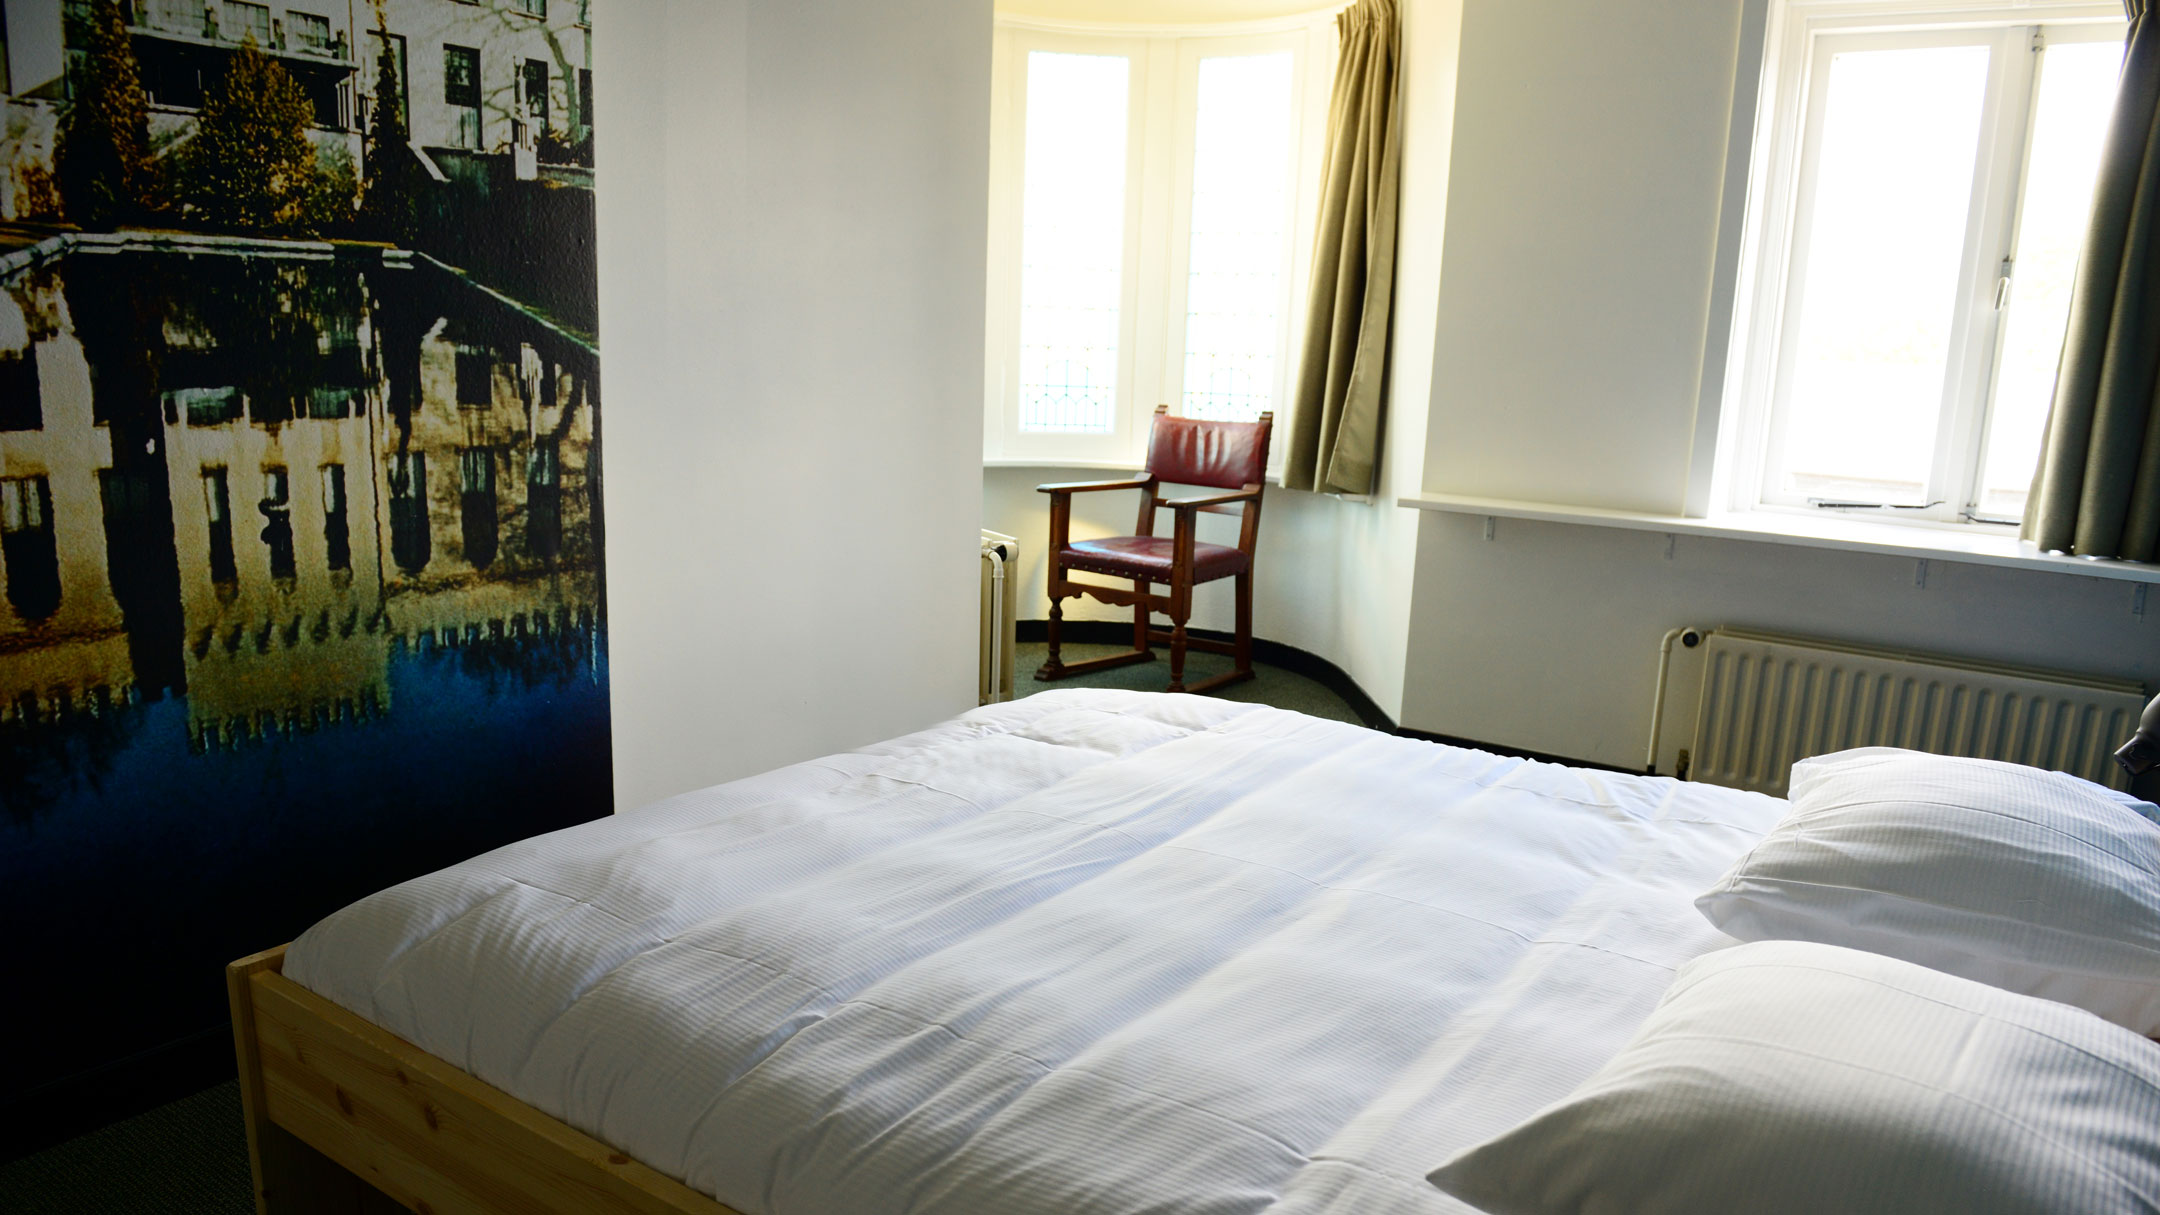 Hostel Roots Tilburg - Economy private rooms - headerfoto